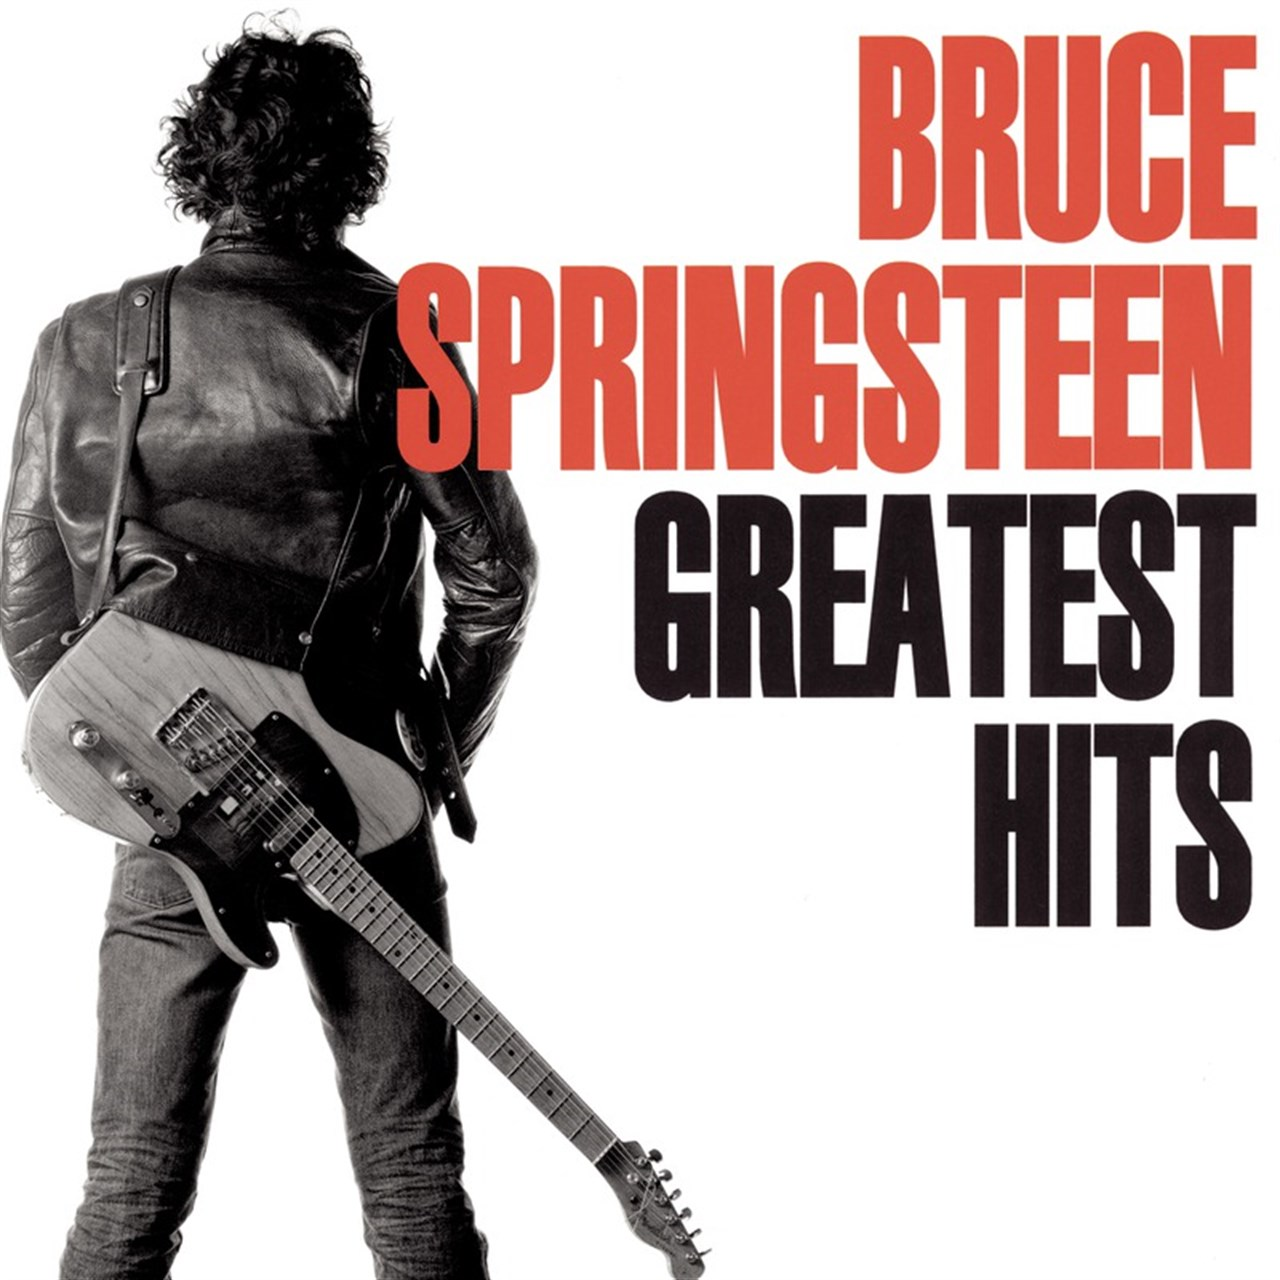 Bruce Springsteen Bruce Springsteen - Greatest Hits (2 Lp, Colour) цена